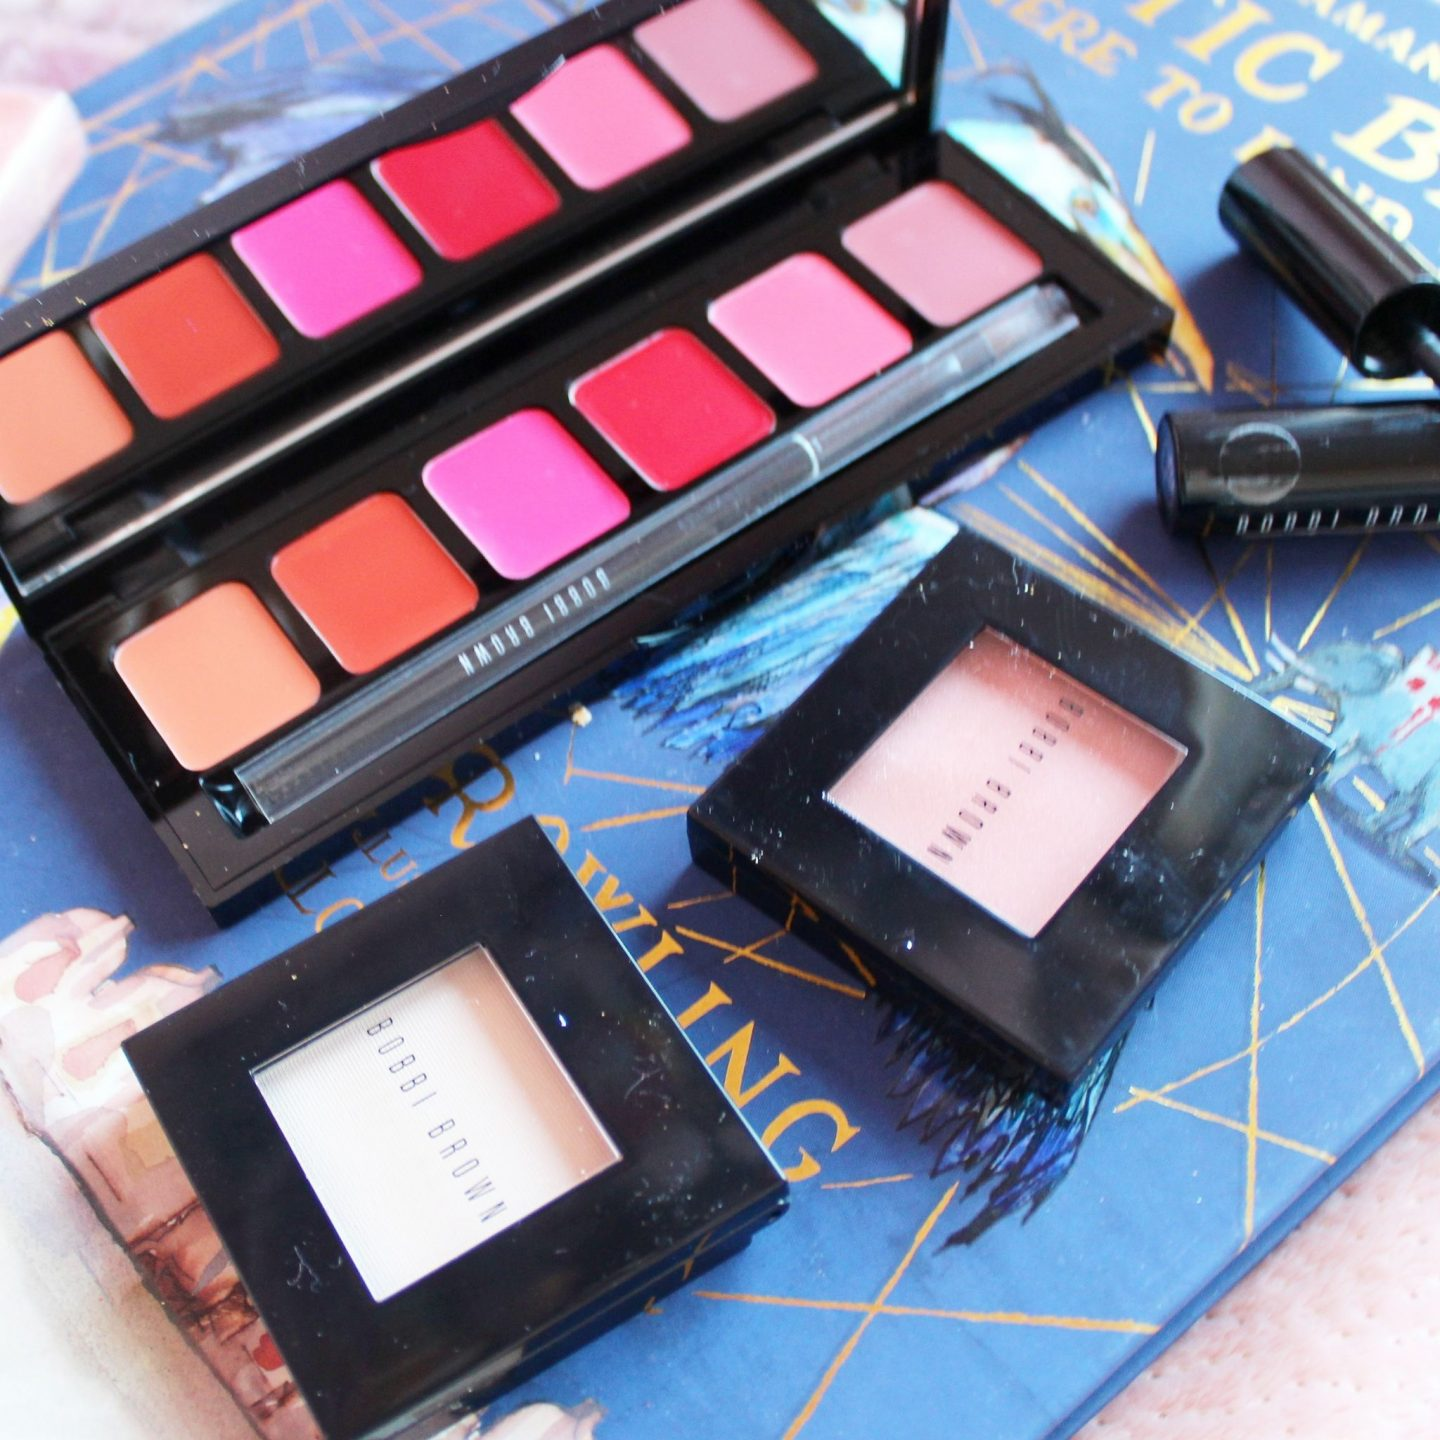 Bobbi Brown Limited Edition Crazy for Colour Lip Palette